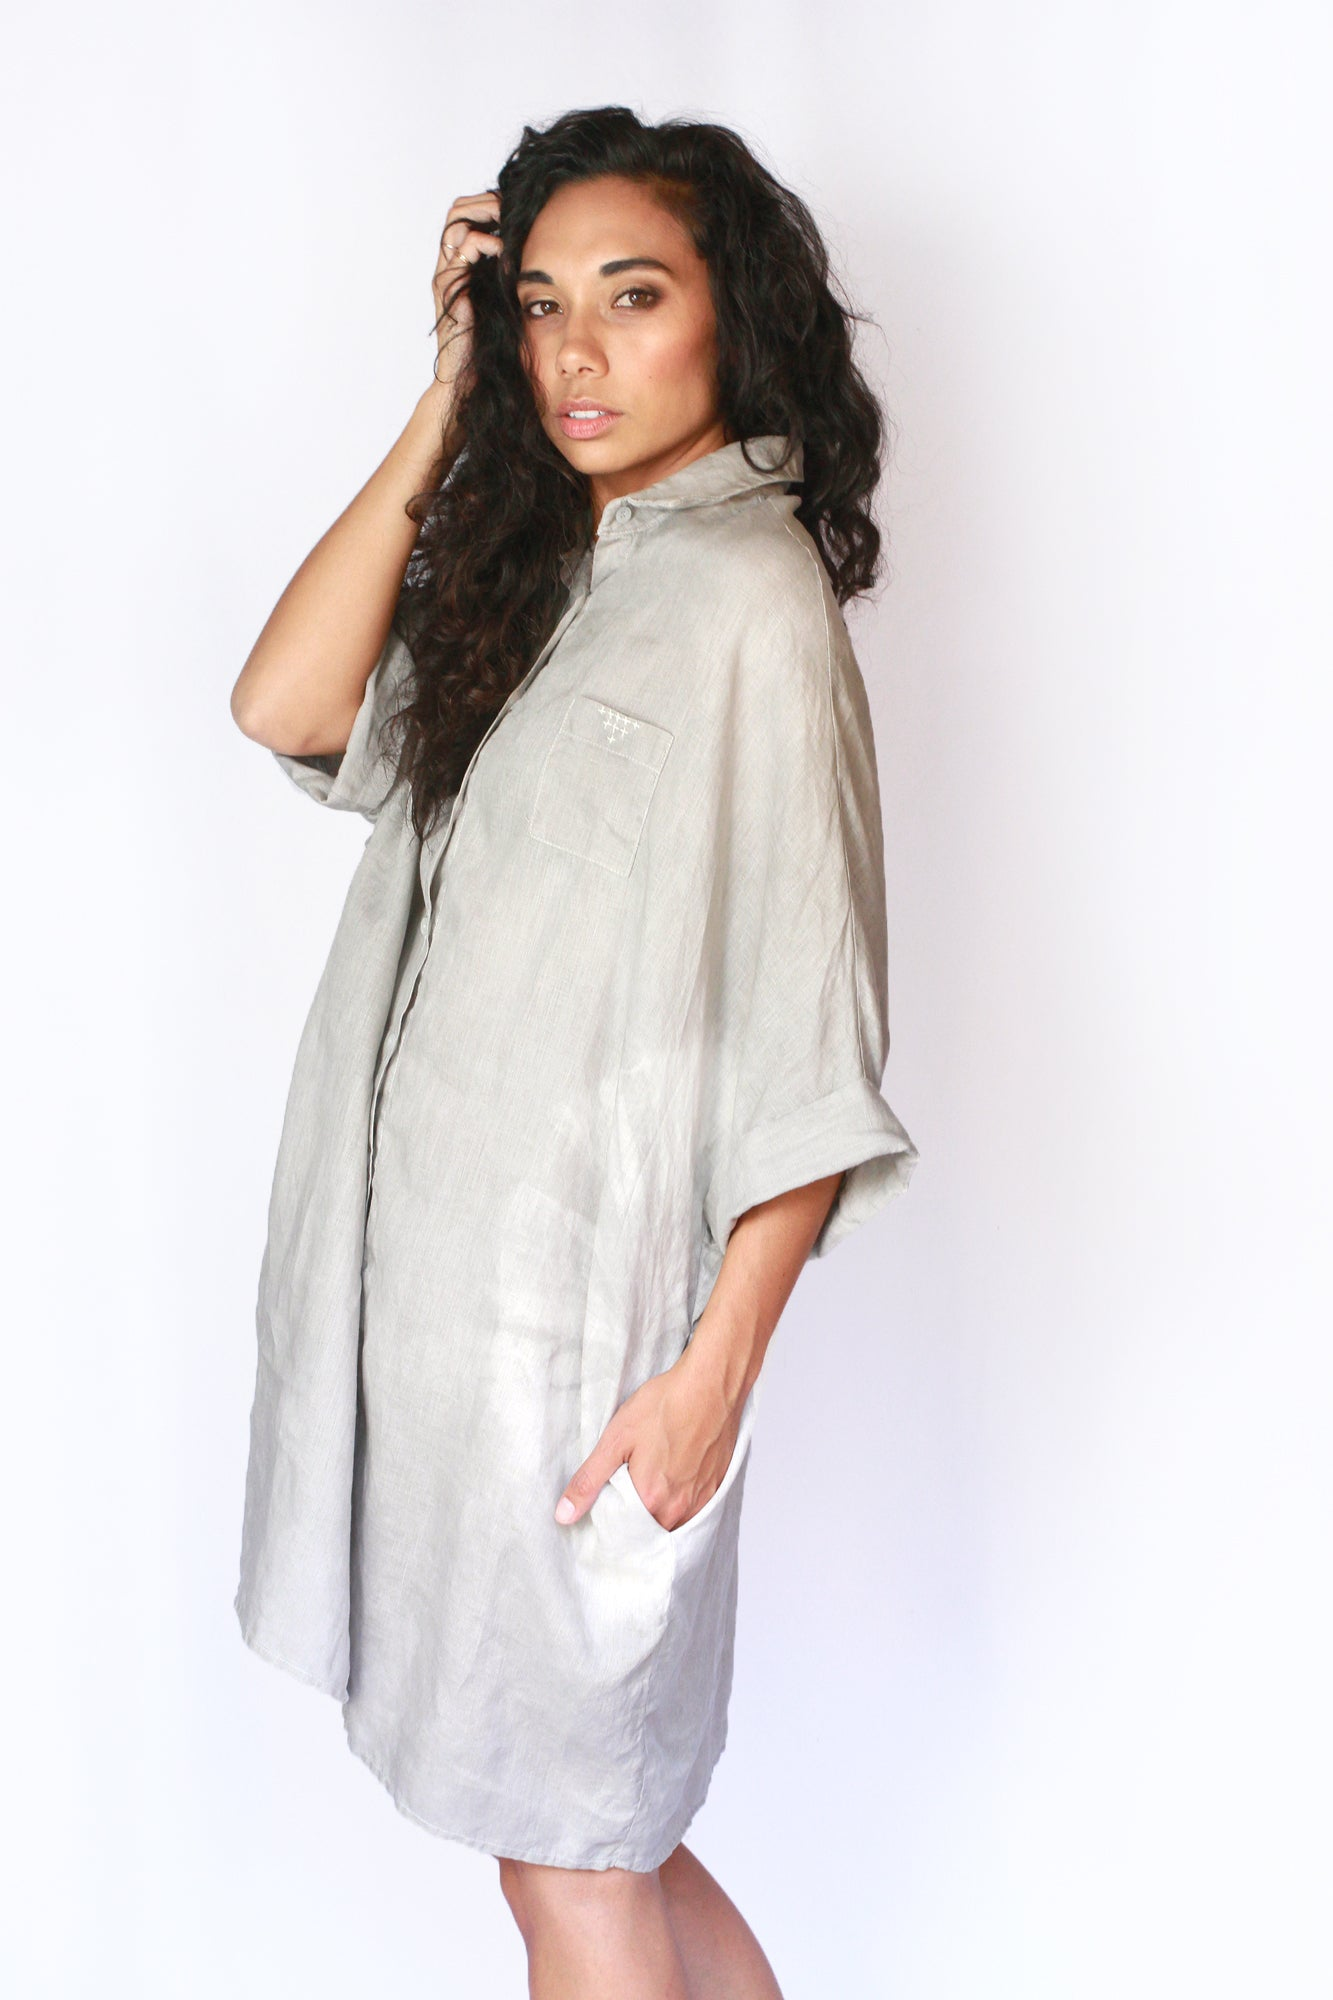 Grey | Organic Lightweight Cotton Smock Top with Pockets | For Women - Modern Shibori